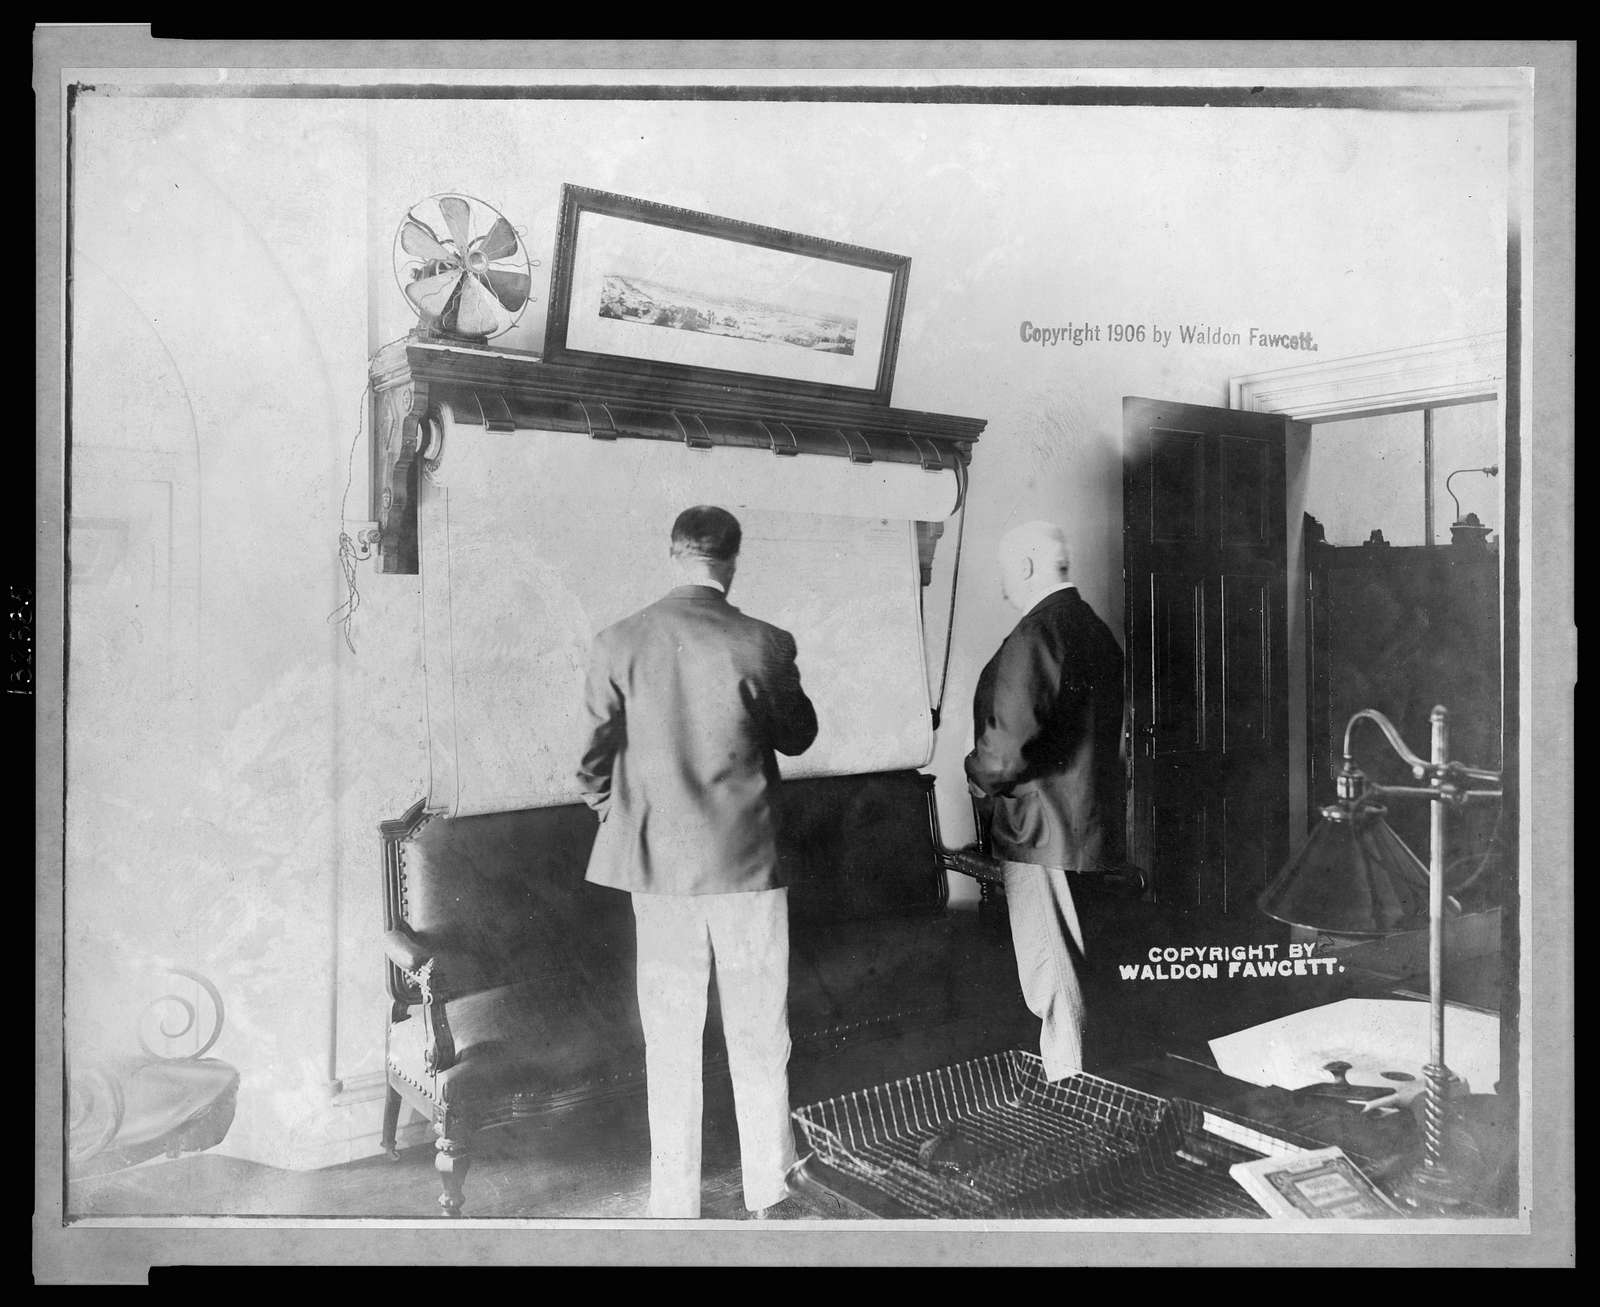 U.S. Secret Service Chief John E. Wilkie examining map in his office